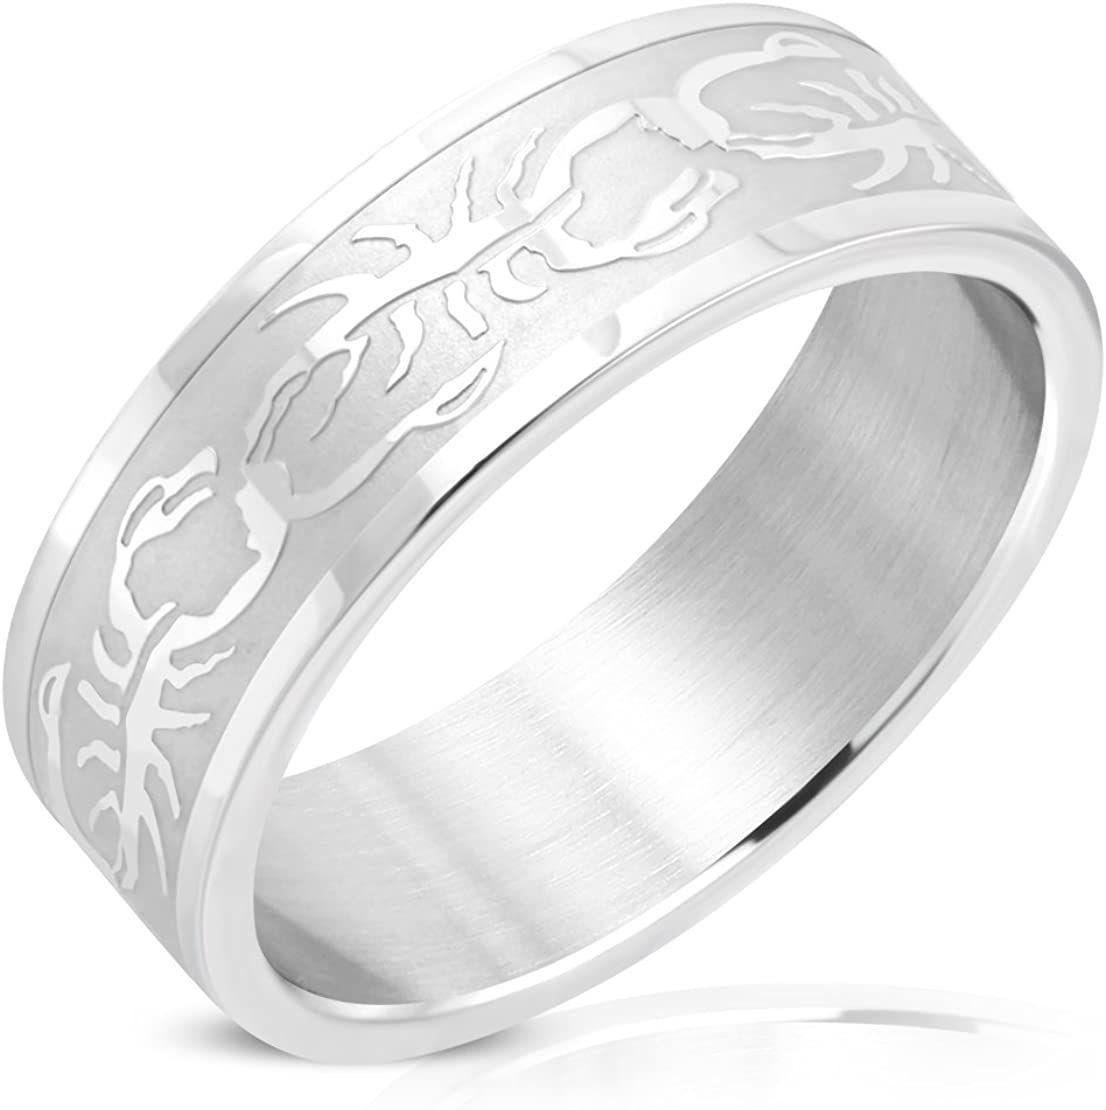 Stainless Steel Matte Finished Scorpion Zodiac Sign Flat Band Ring